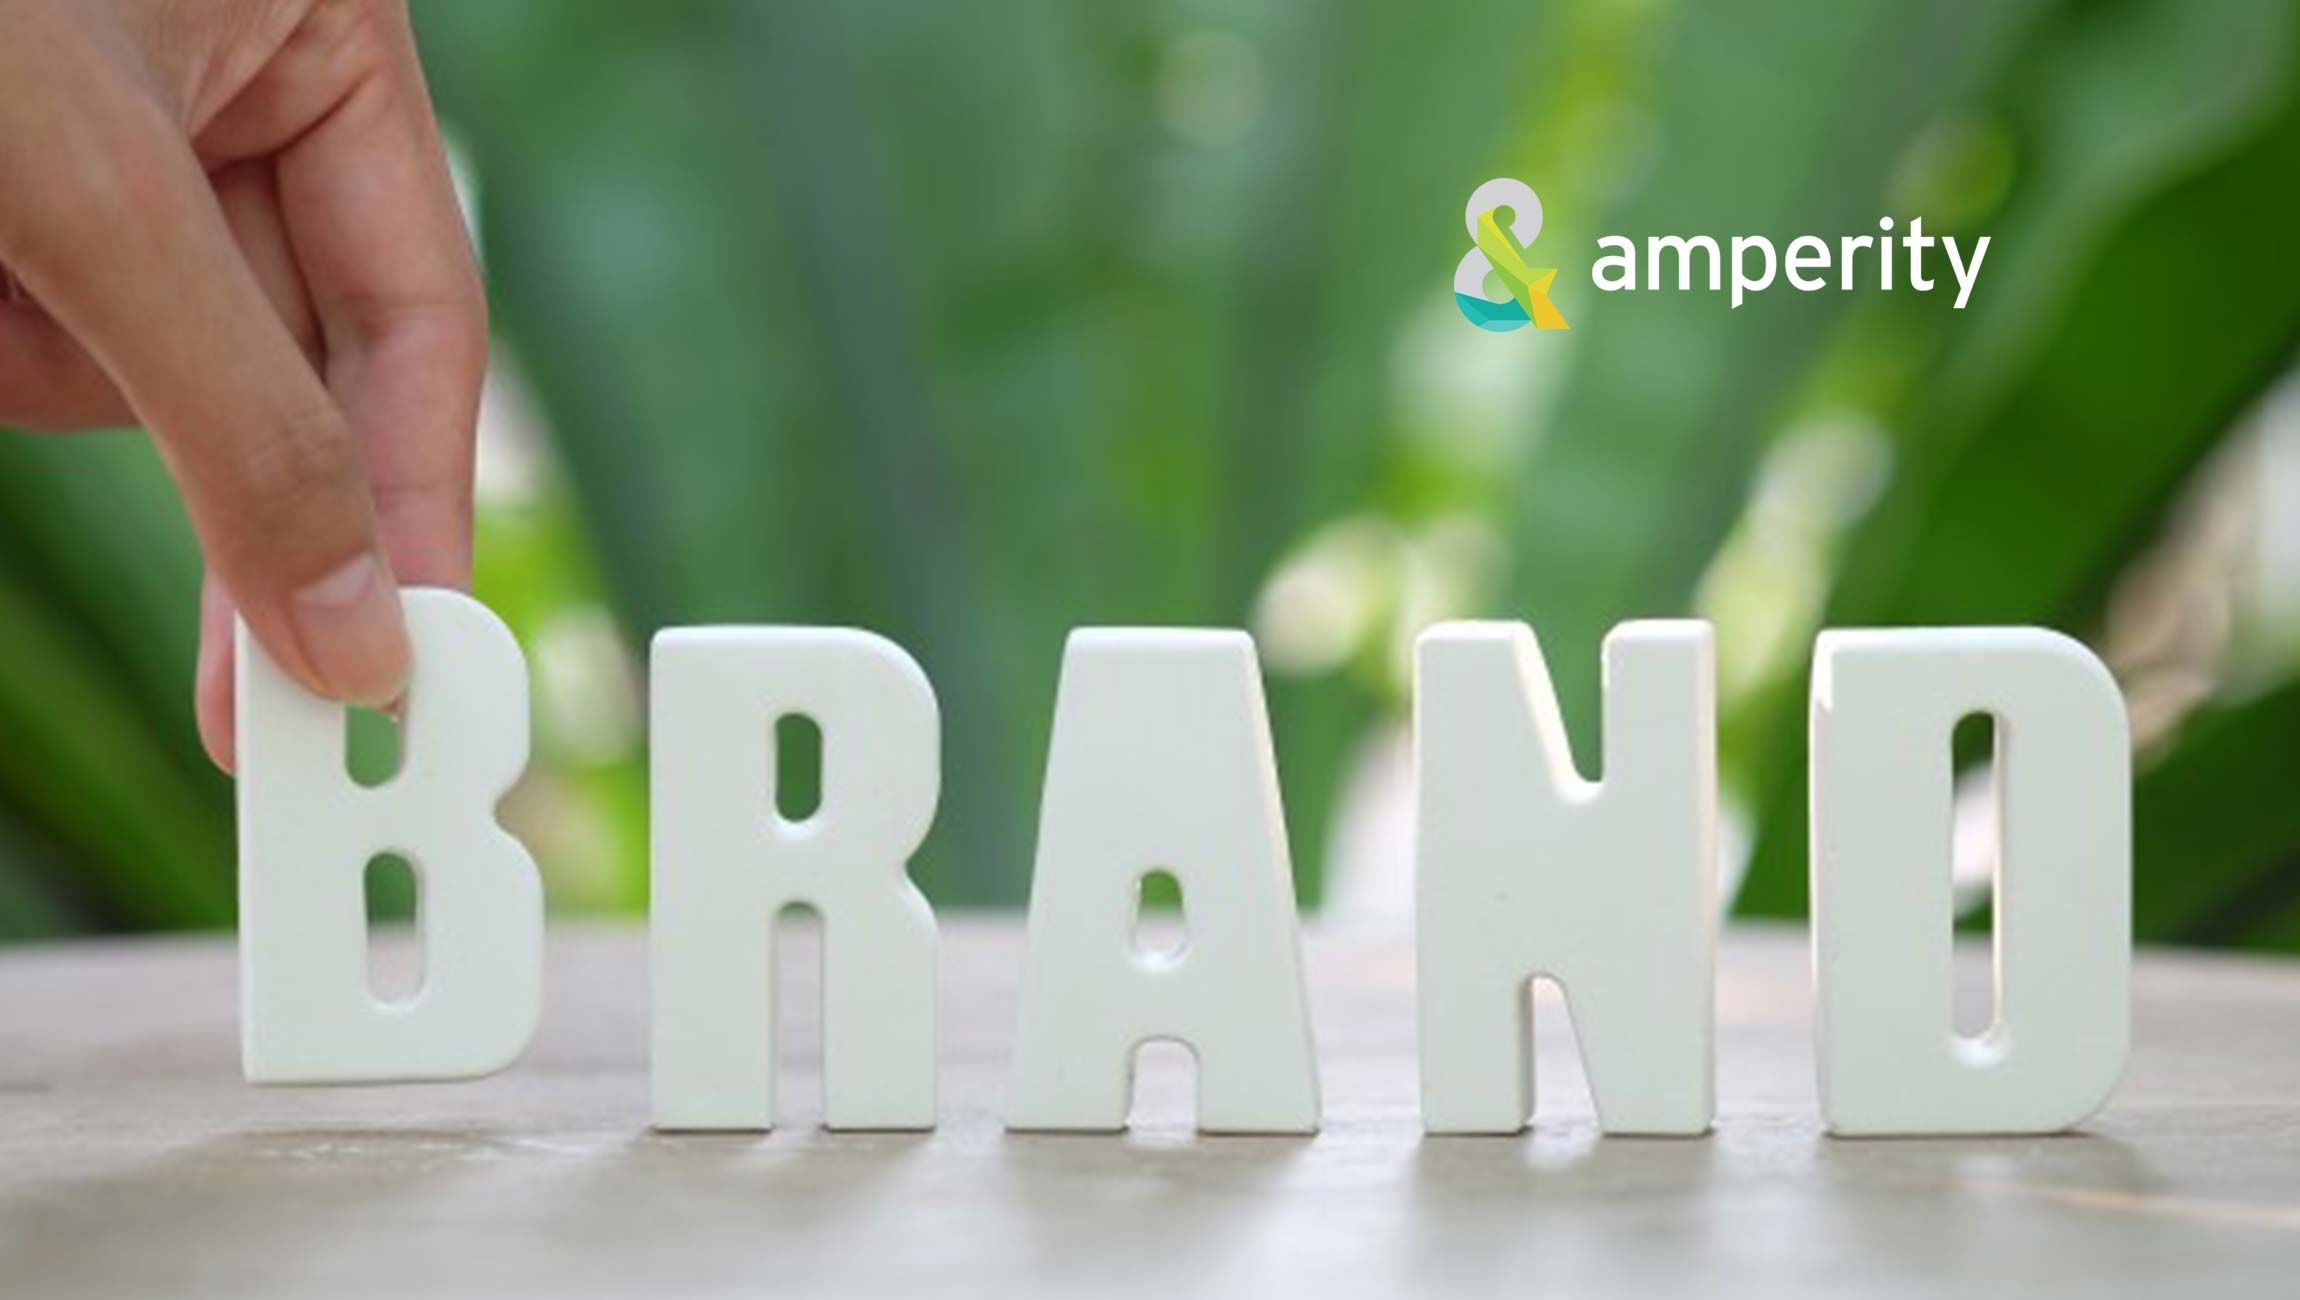 New Partnership Between Amperity CDP and Persado Signals Acceleration of the Next Era of Personalization for Data-Driven Brands